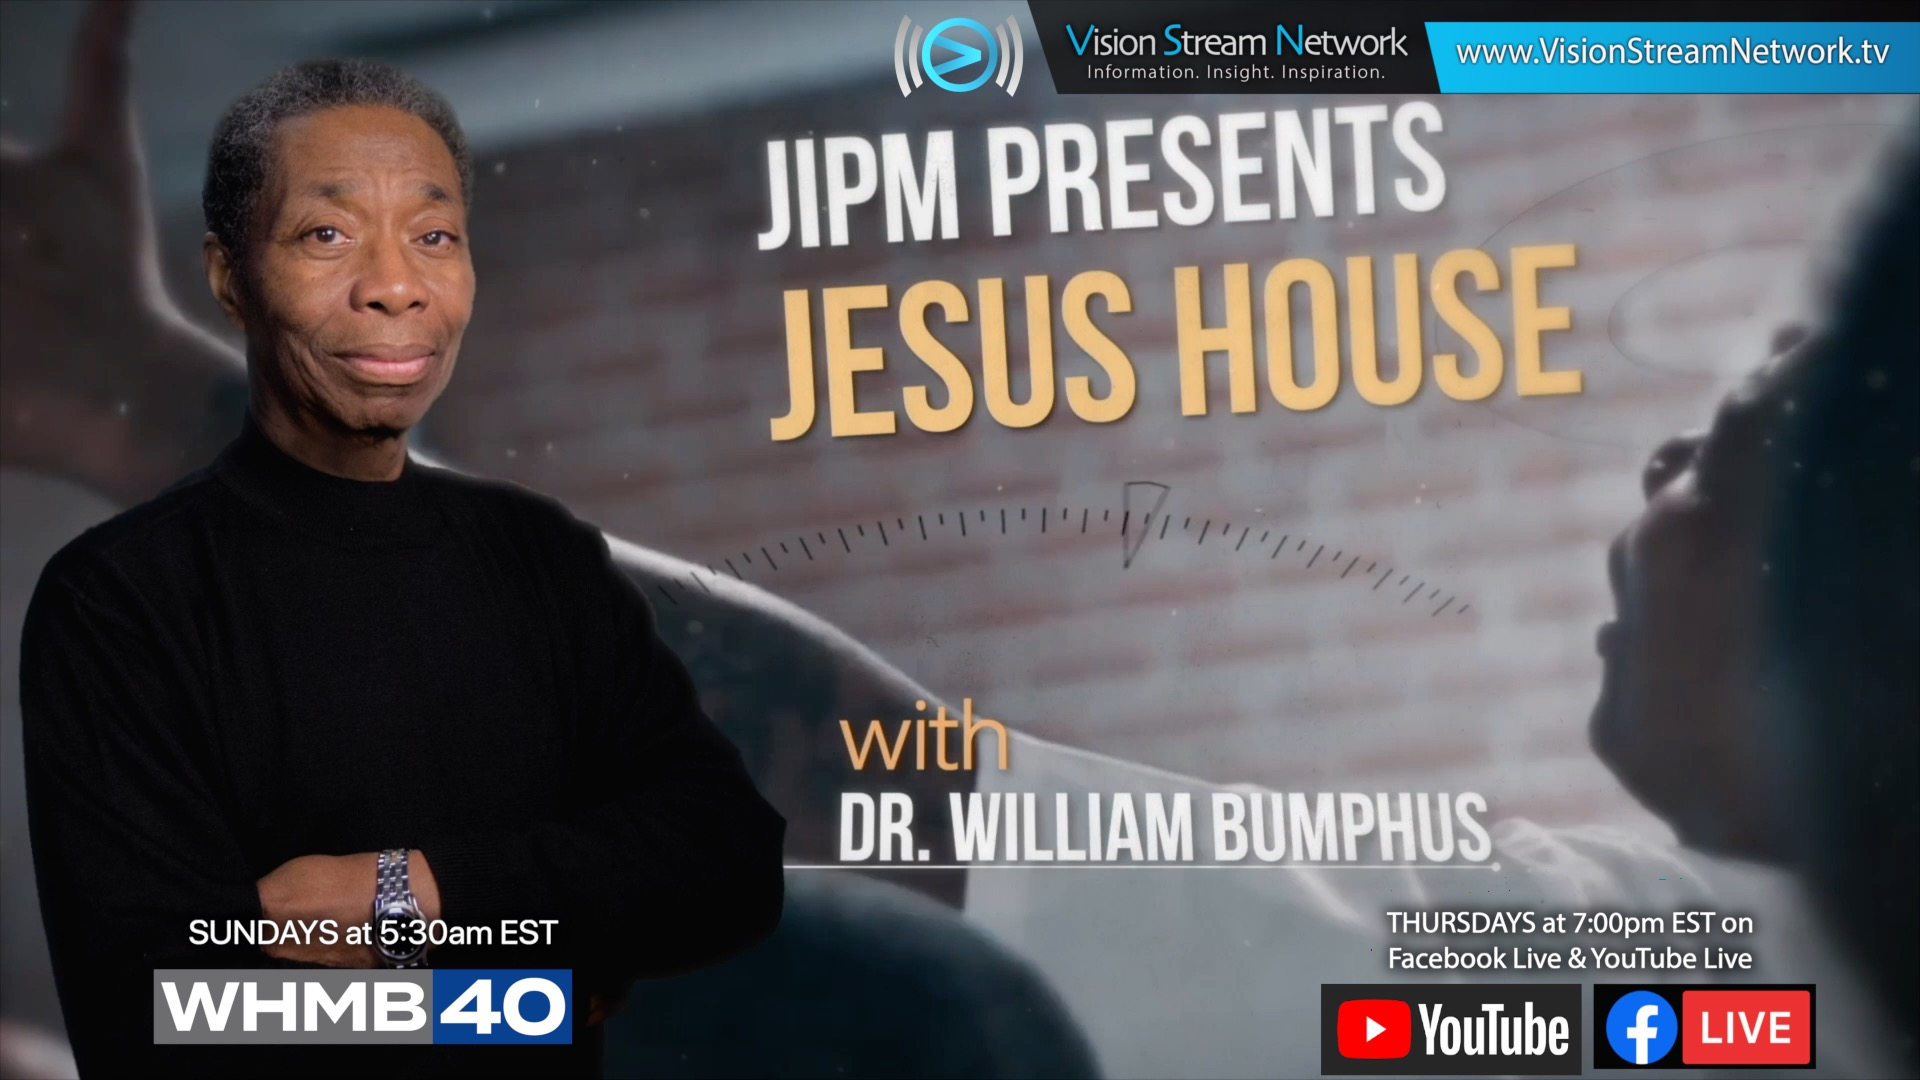 Pastor Williams Bumphus